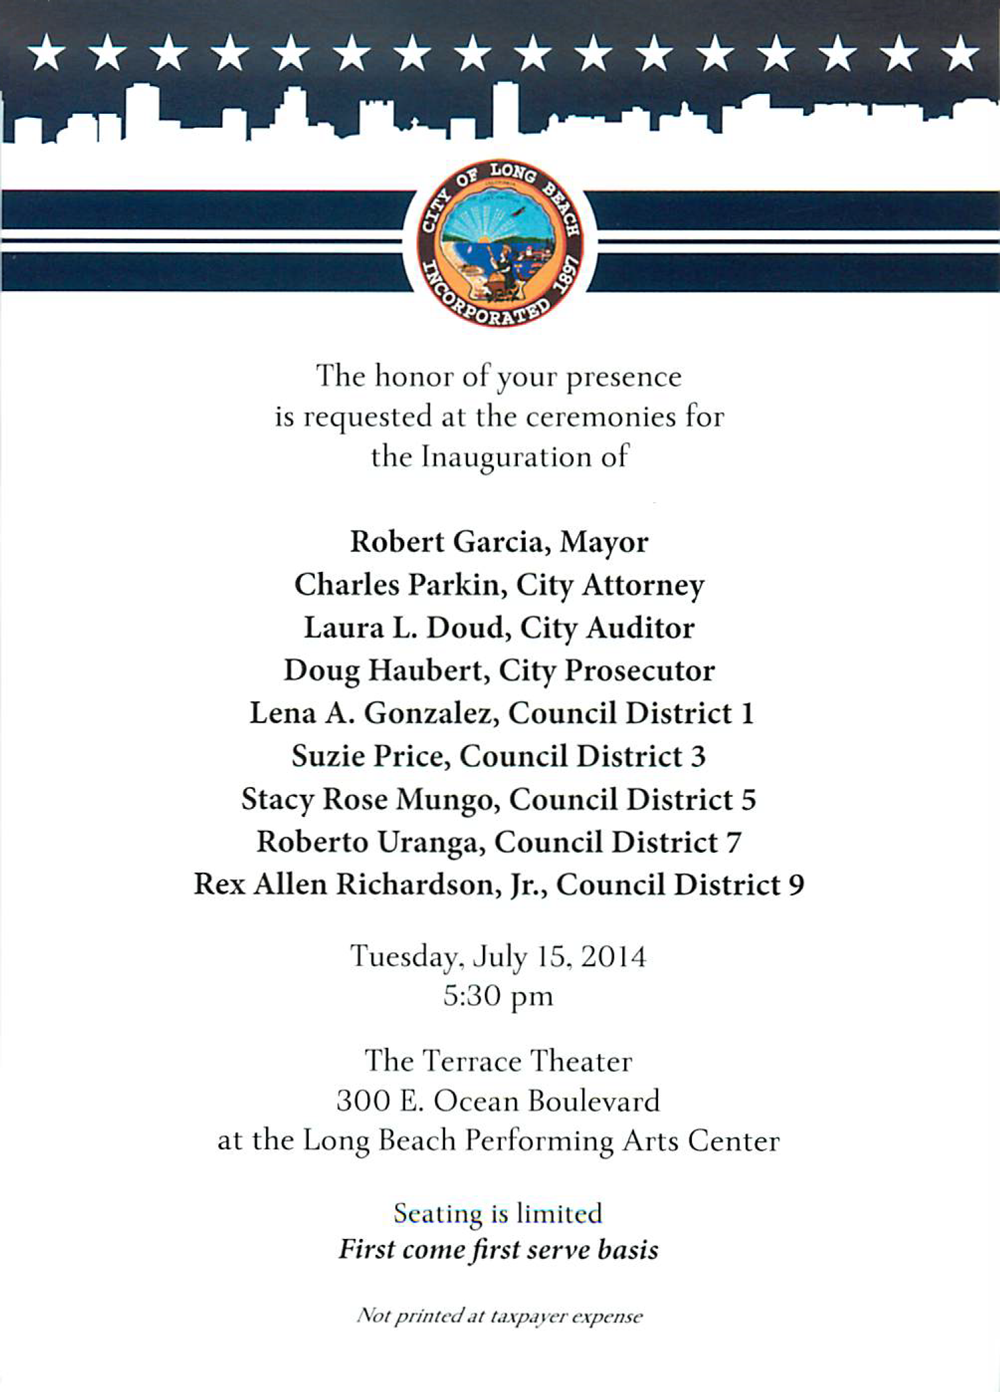 Swearing-In-Ceremony-Invite-1.png